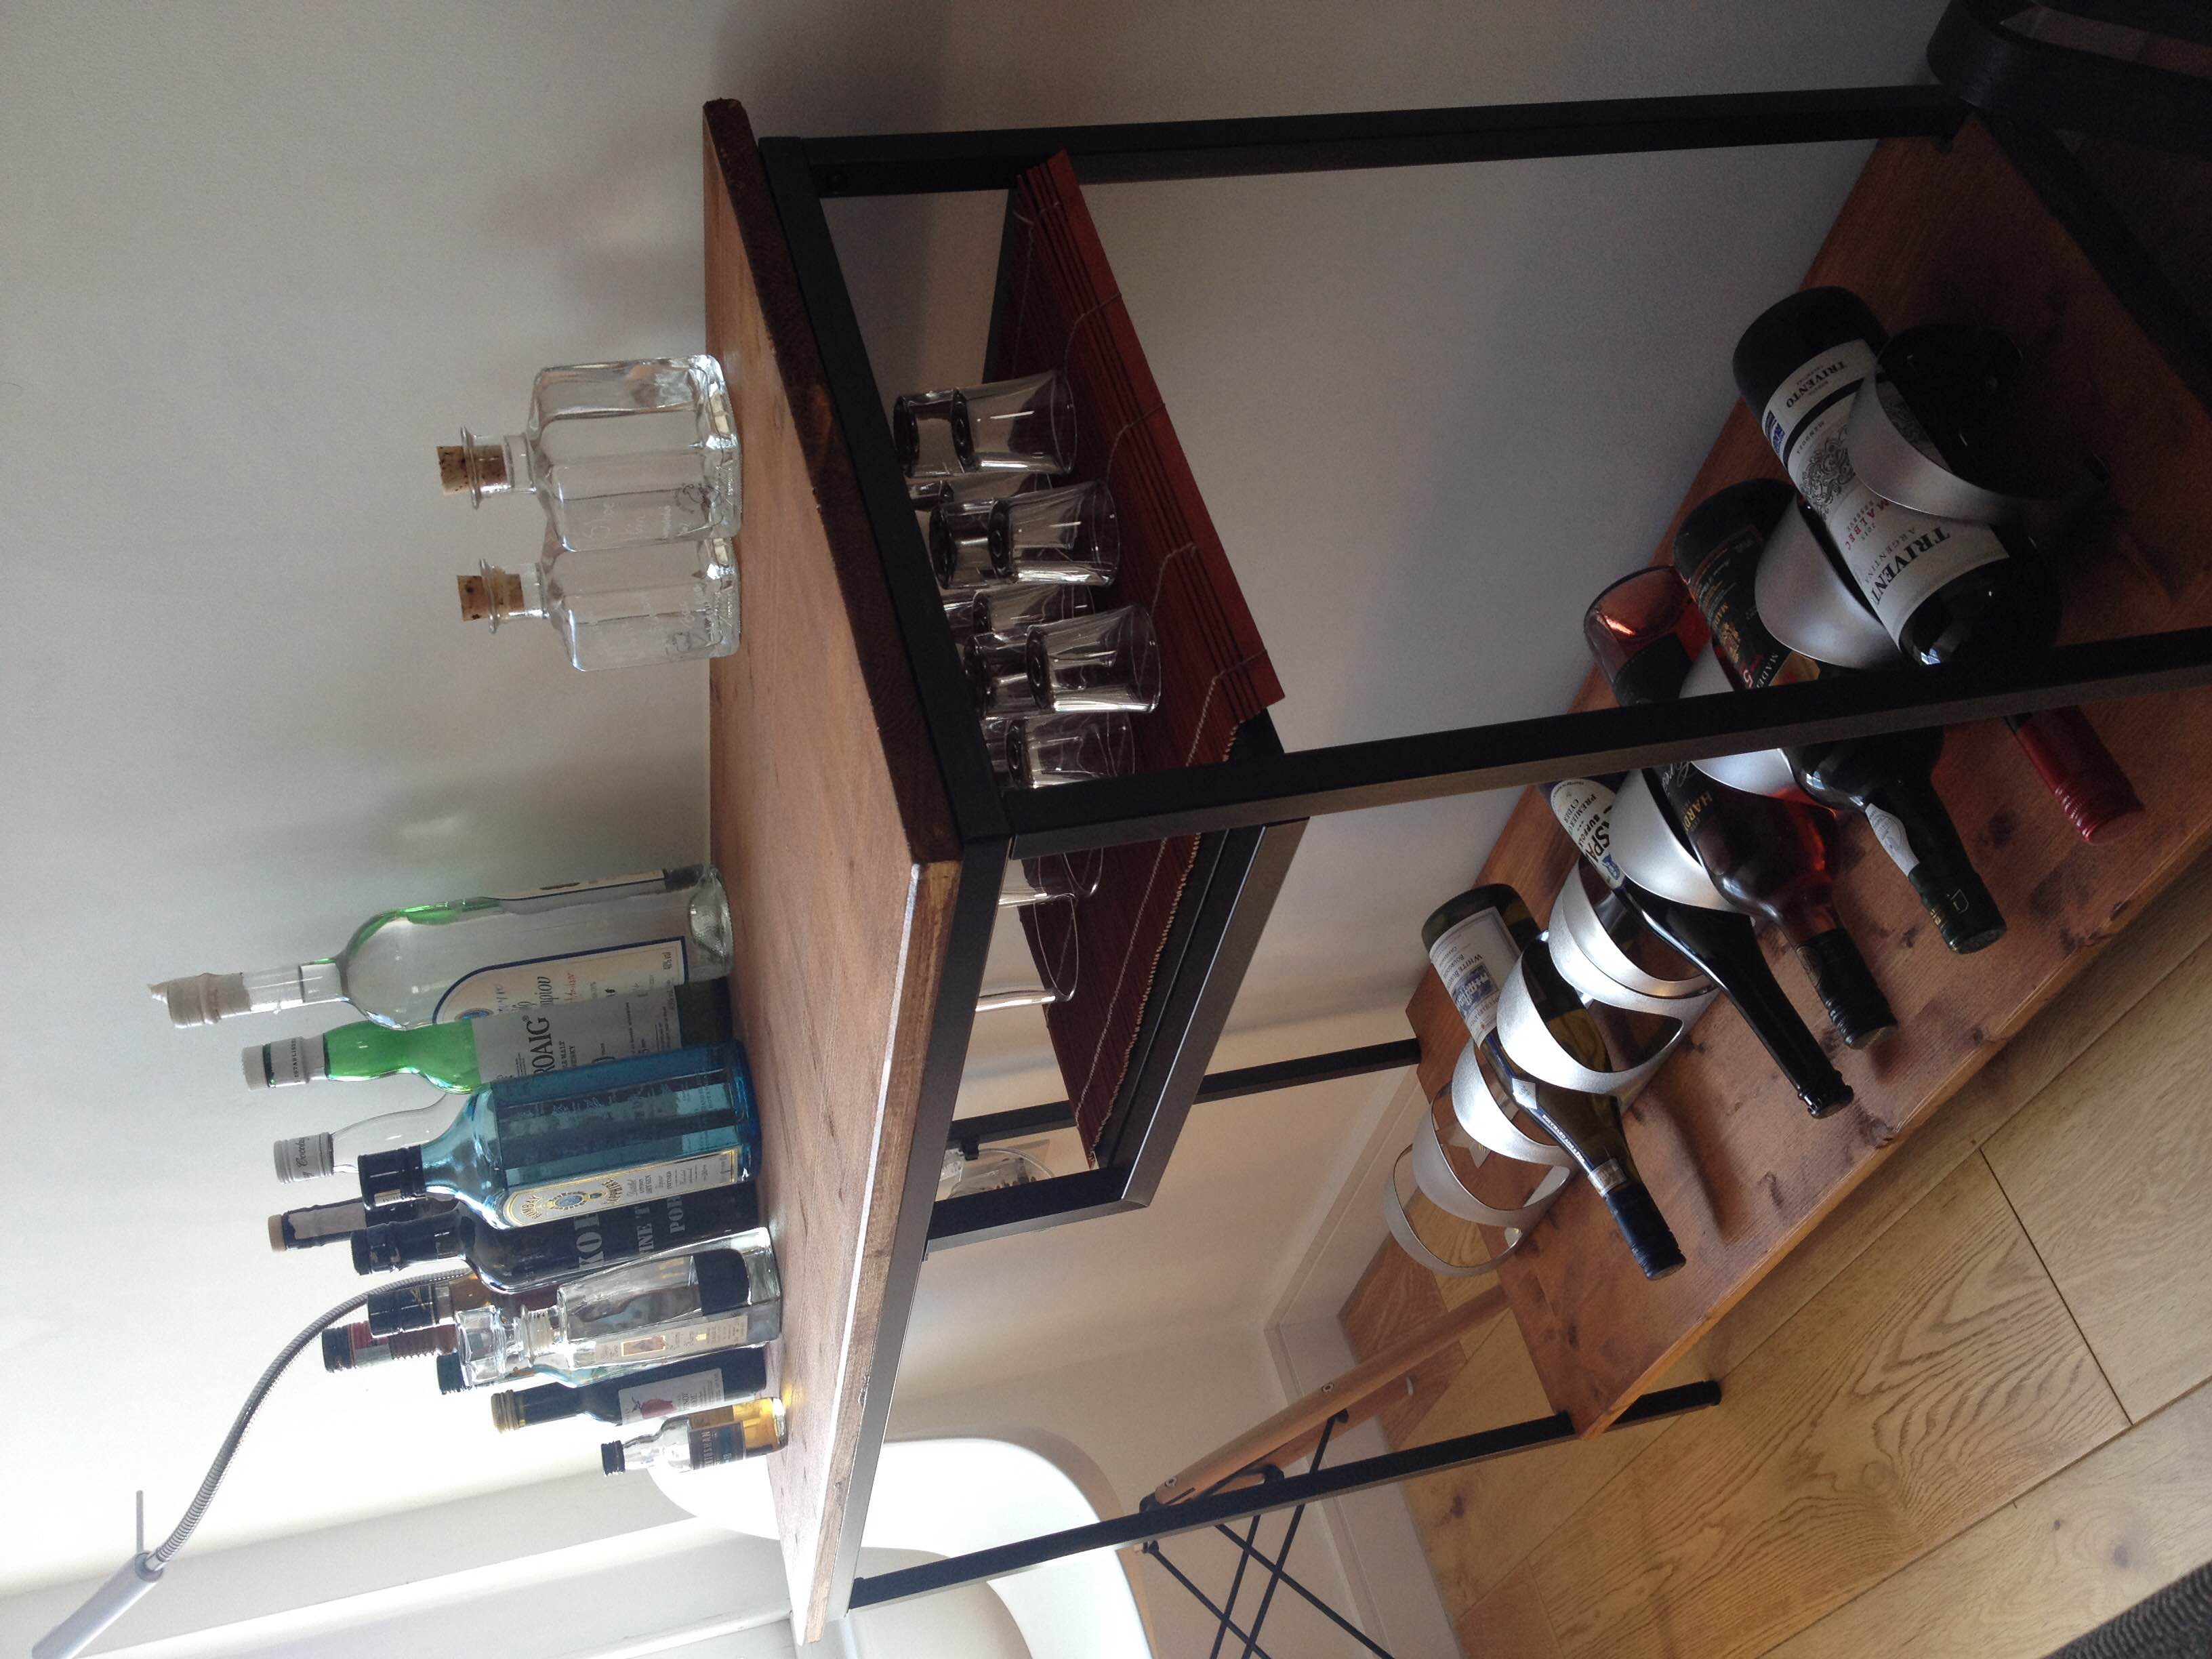 Bar cart from the right